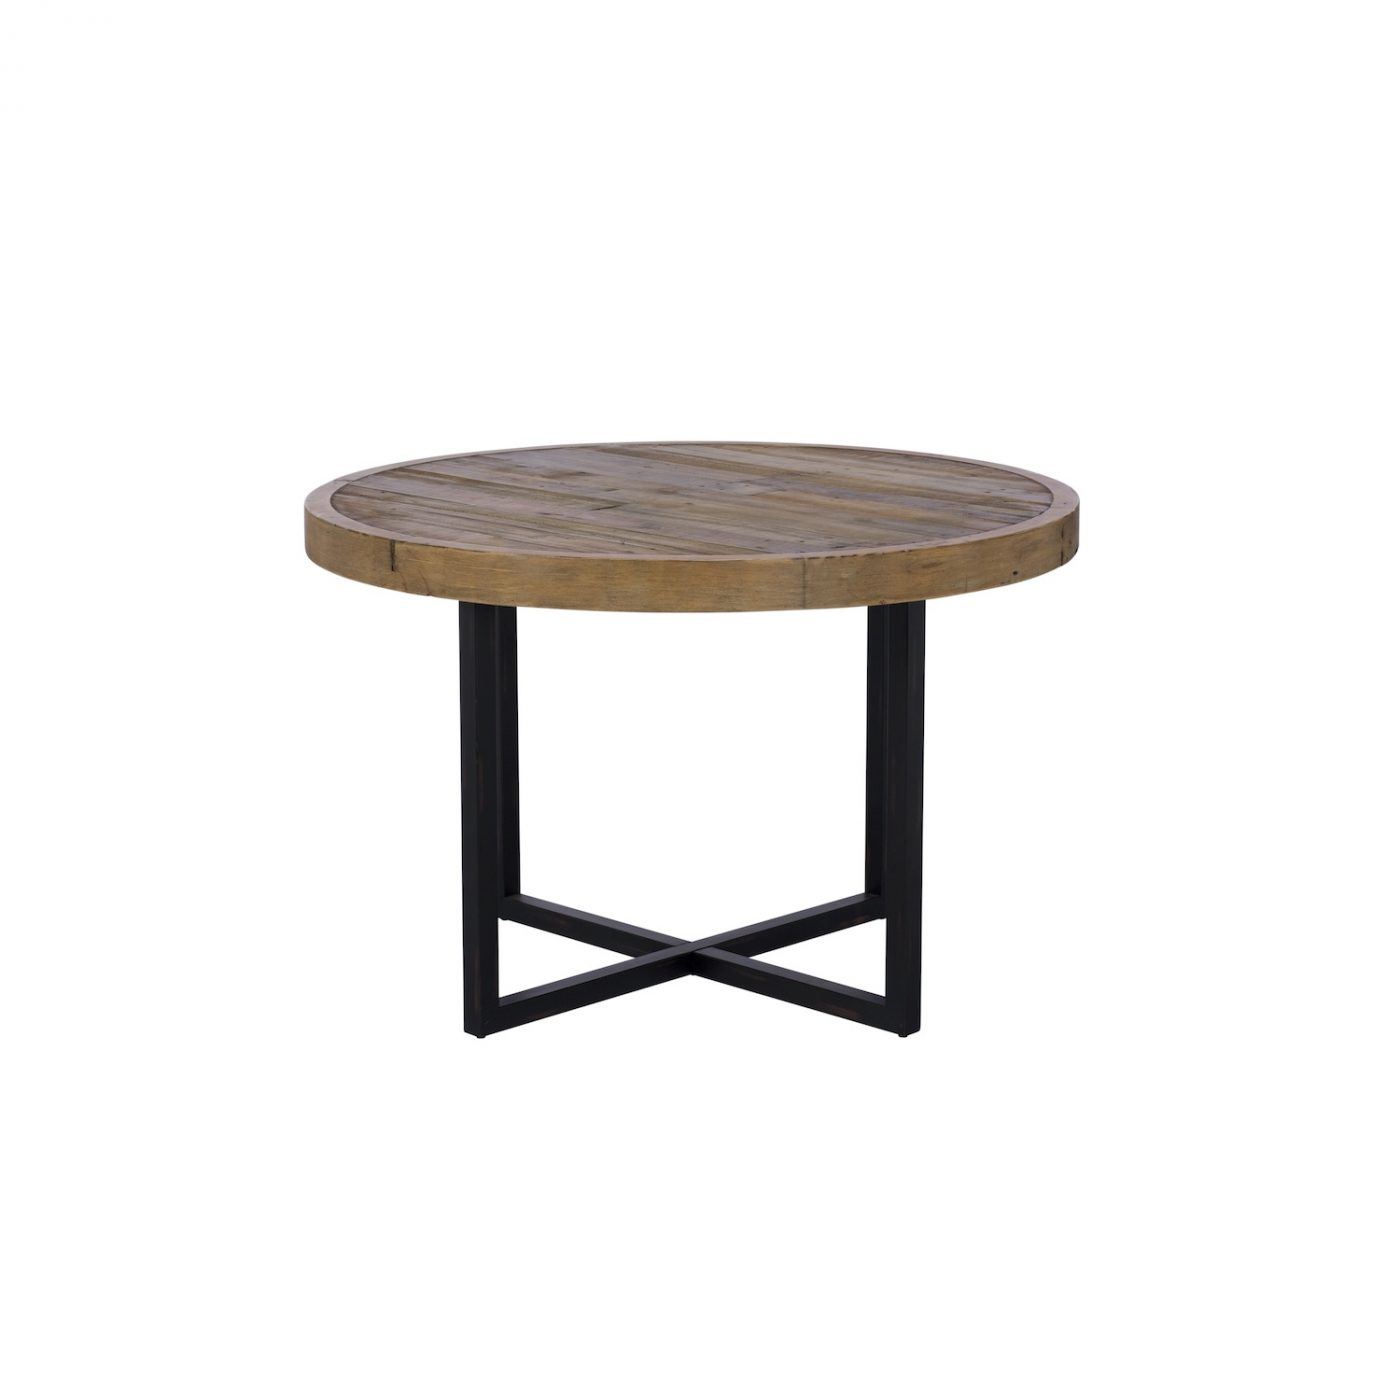 Newland round dining table reclaimed wood